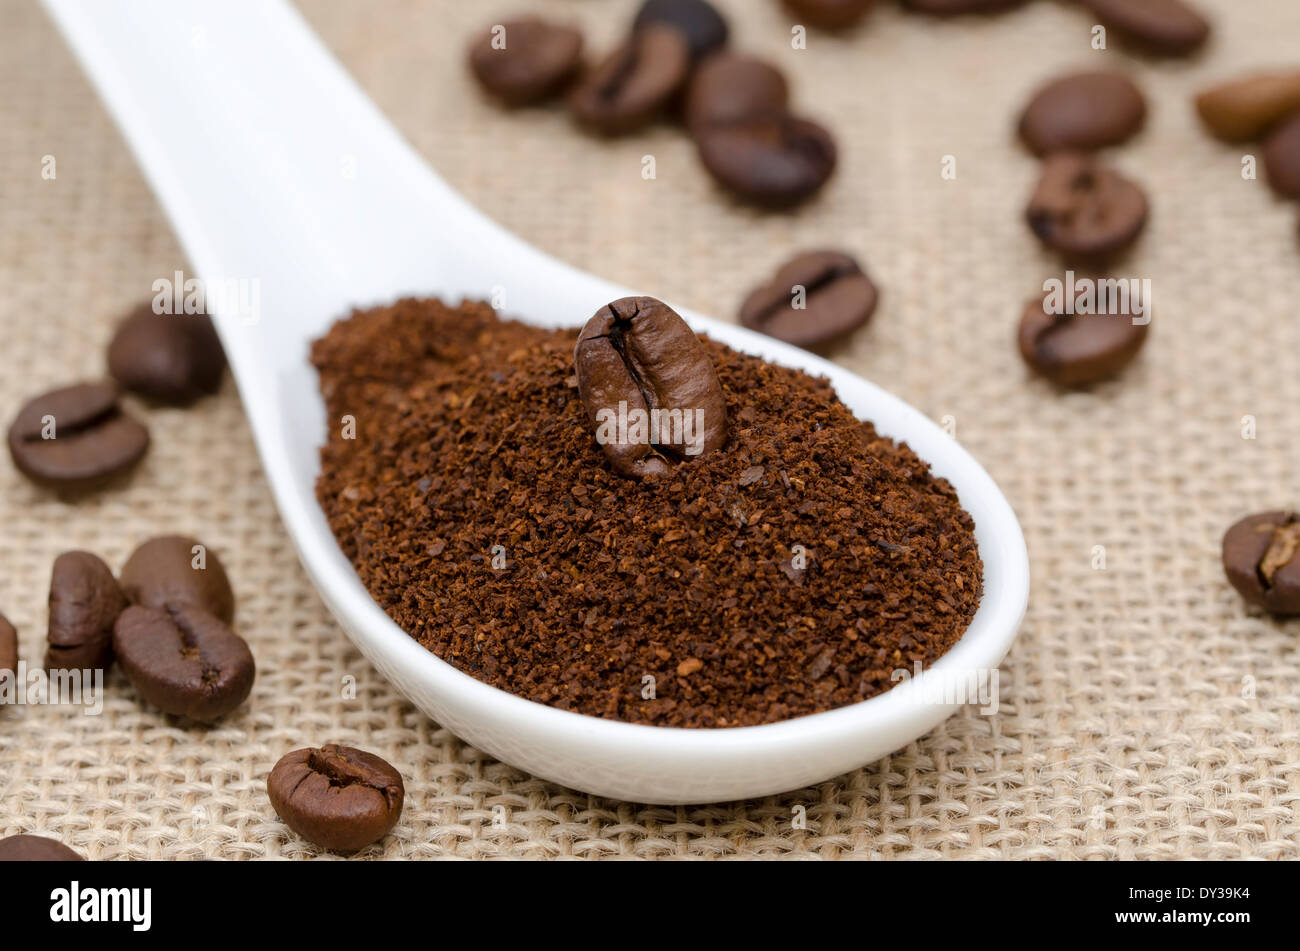 white porcelain spoon with ground coffee and coffee beans on a burlap - Stock Image